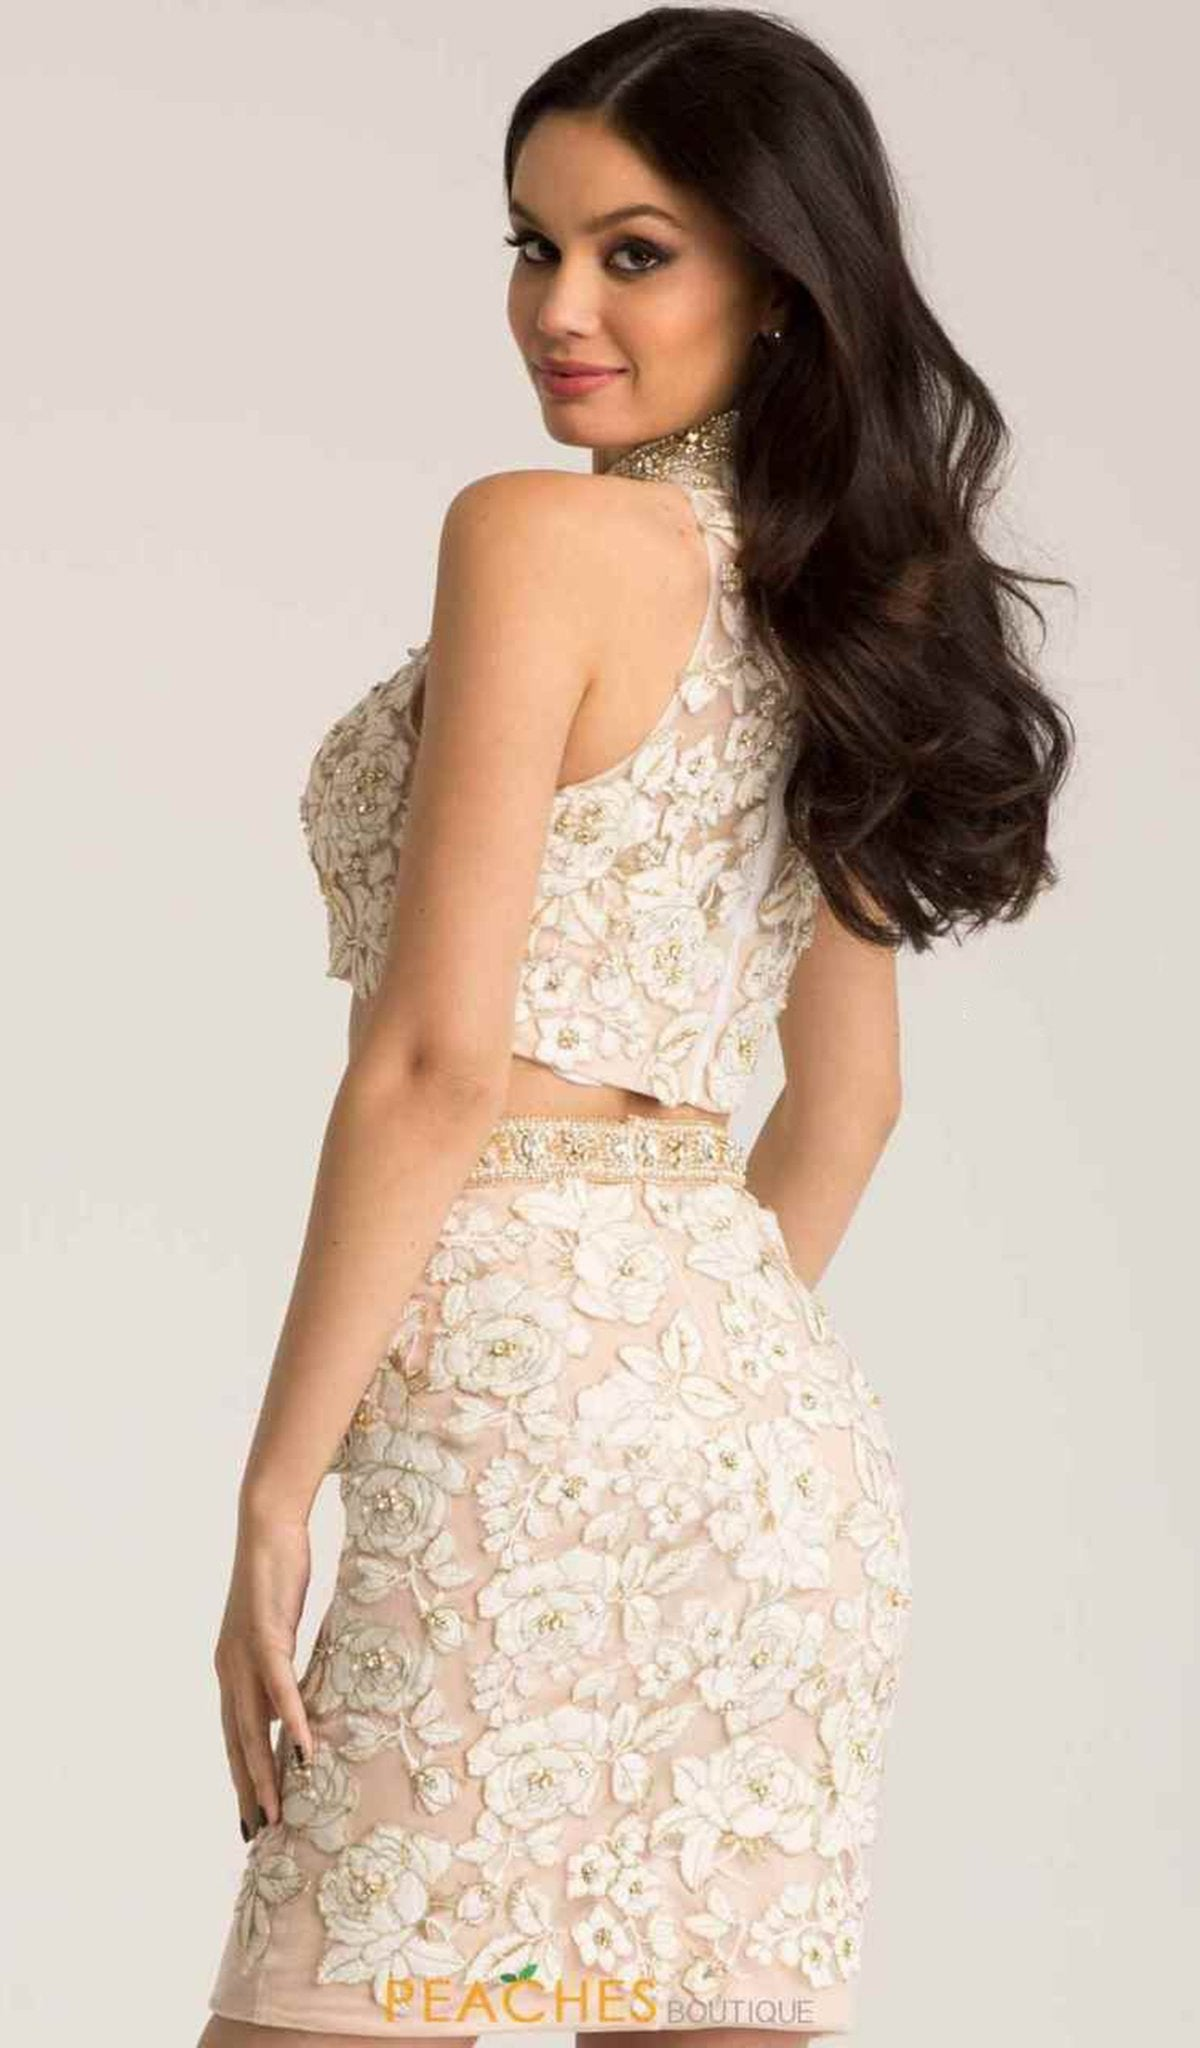 Jovani - 55241 Two Piece Floral Lace Fitted Short Dress in Ivory and Nude